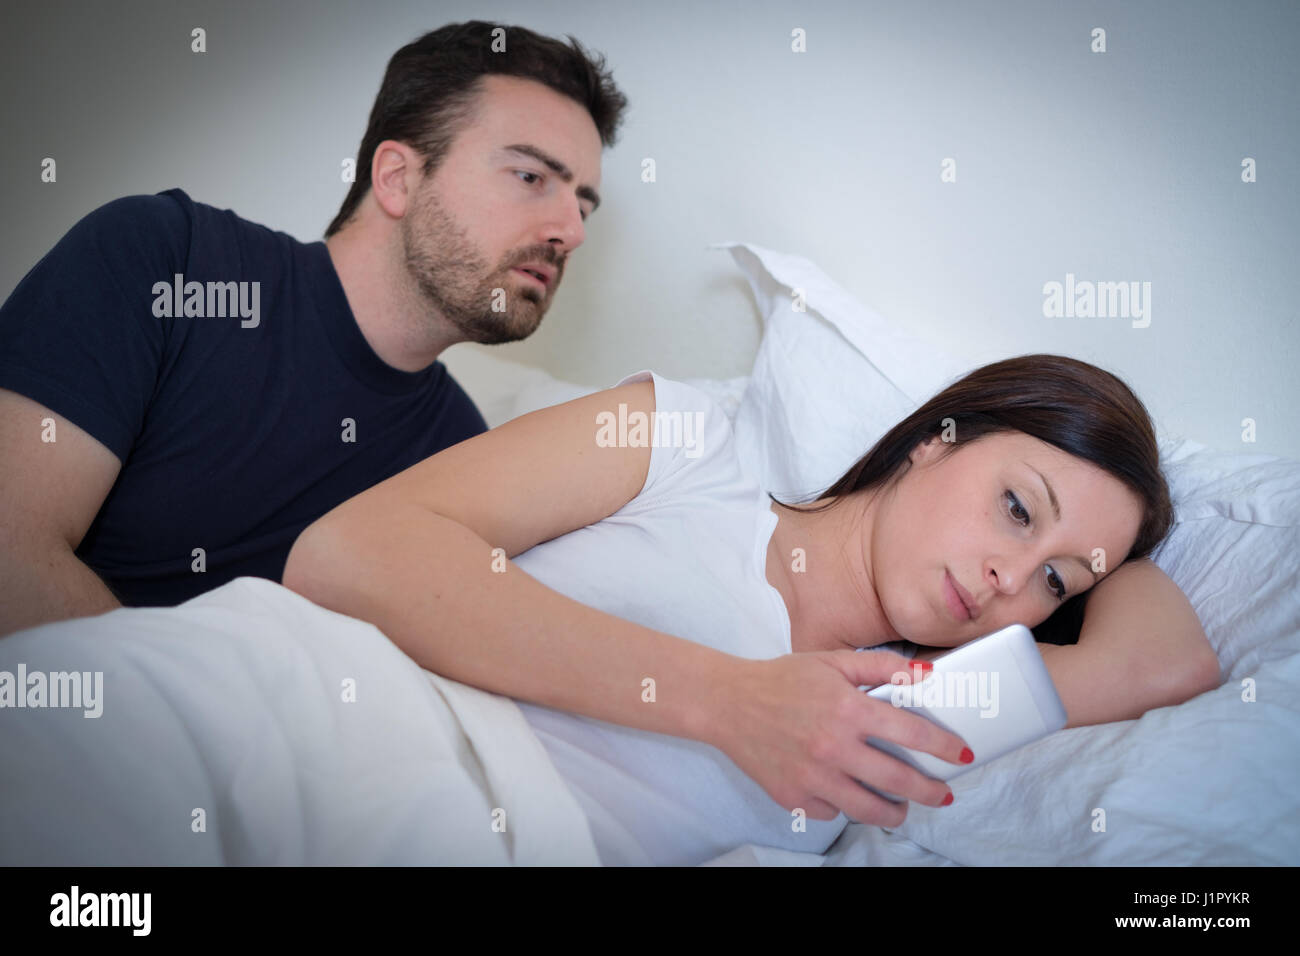 Husband discovering the web treachery of his wife - Stock Image